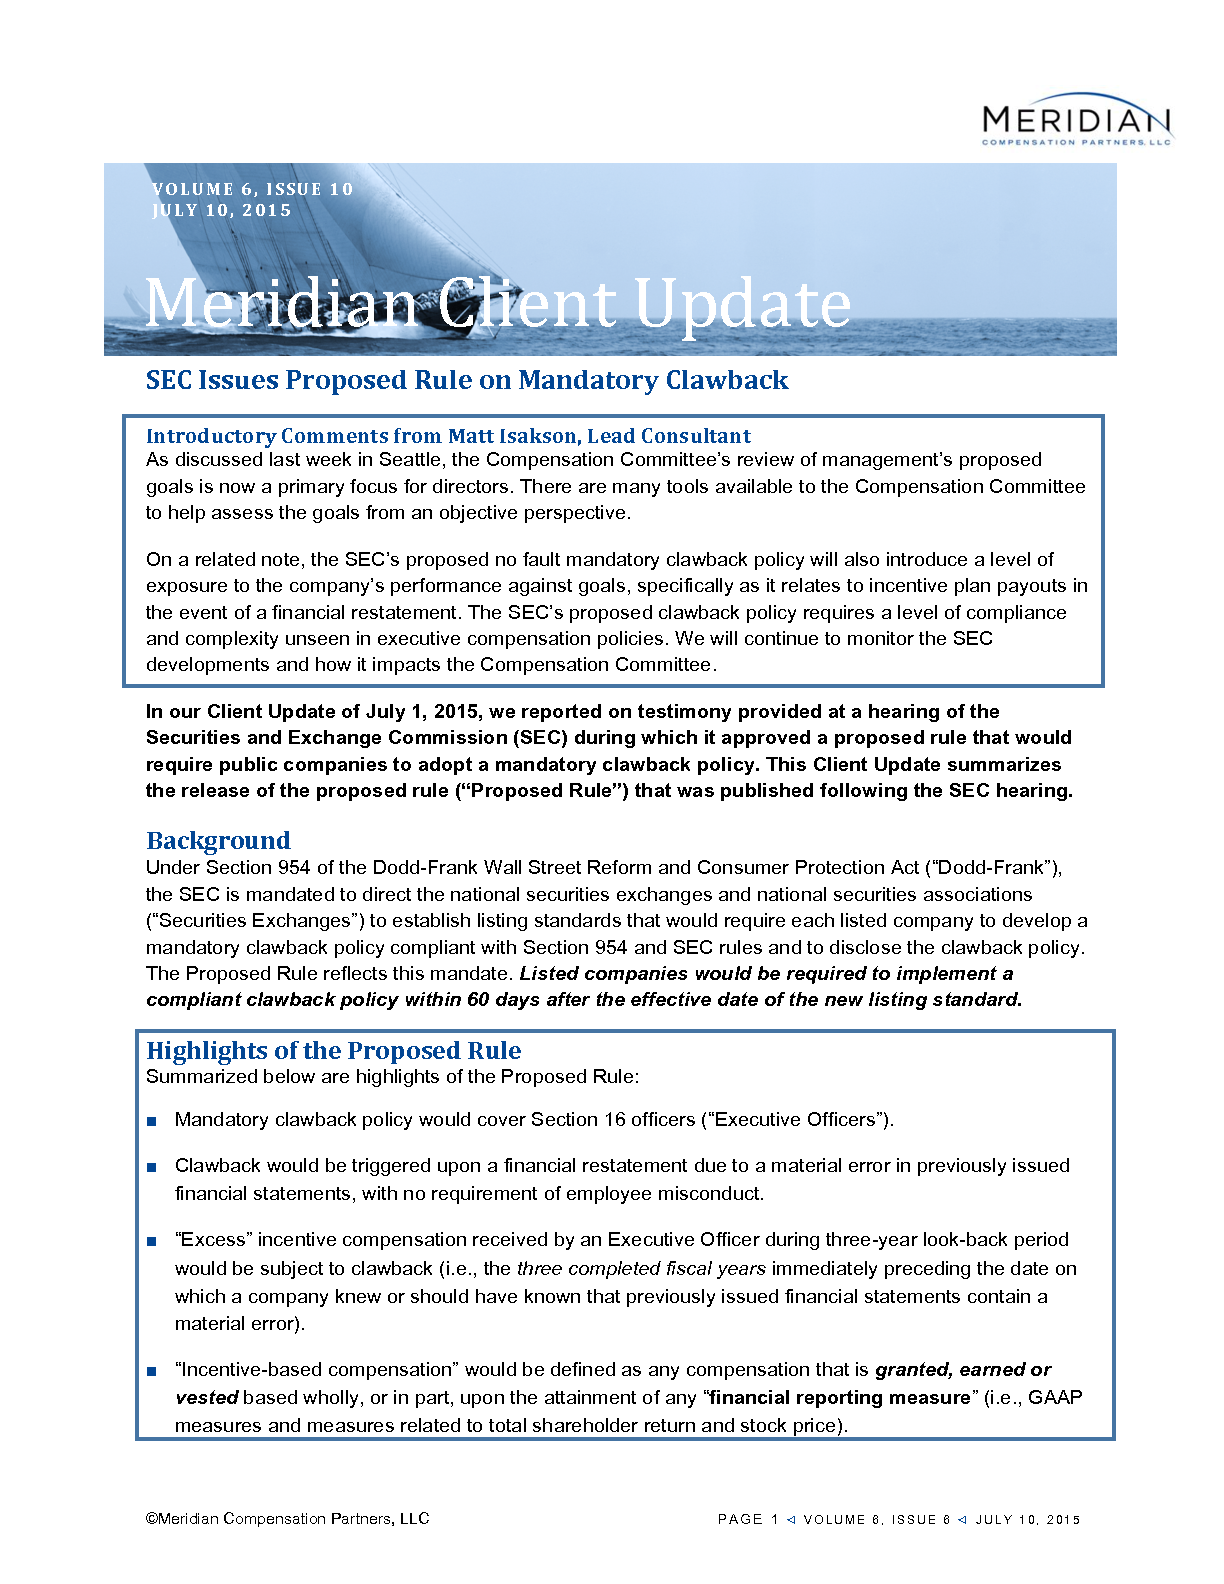 Sec releases proposed rule on mandatory clawback meridian matthew isakson sec releases proposed rule on mandatory clawback pdf platinumwayz